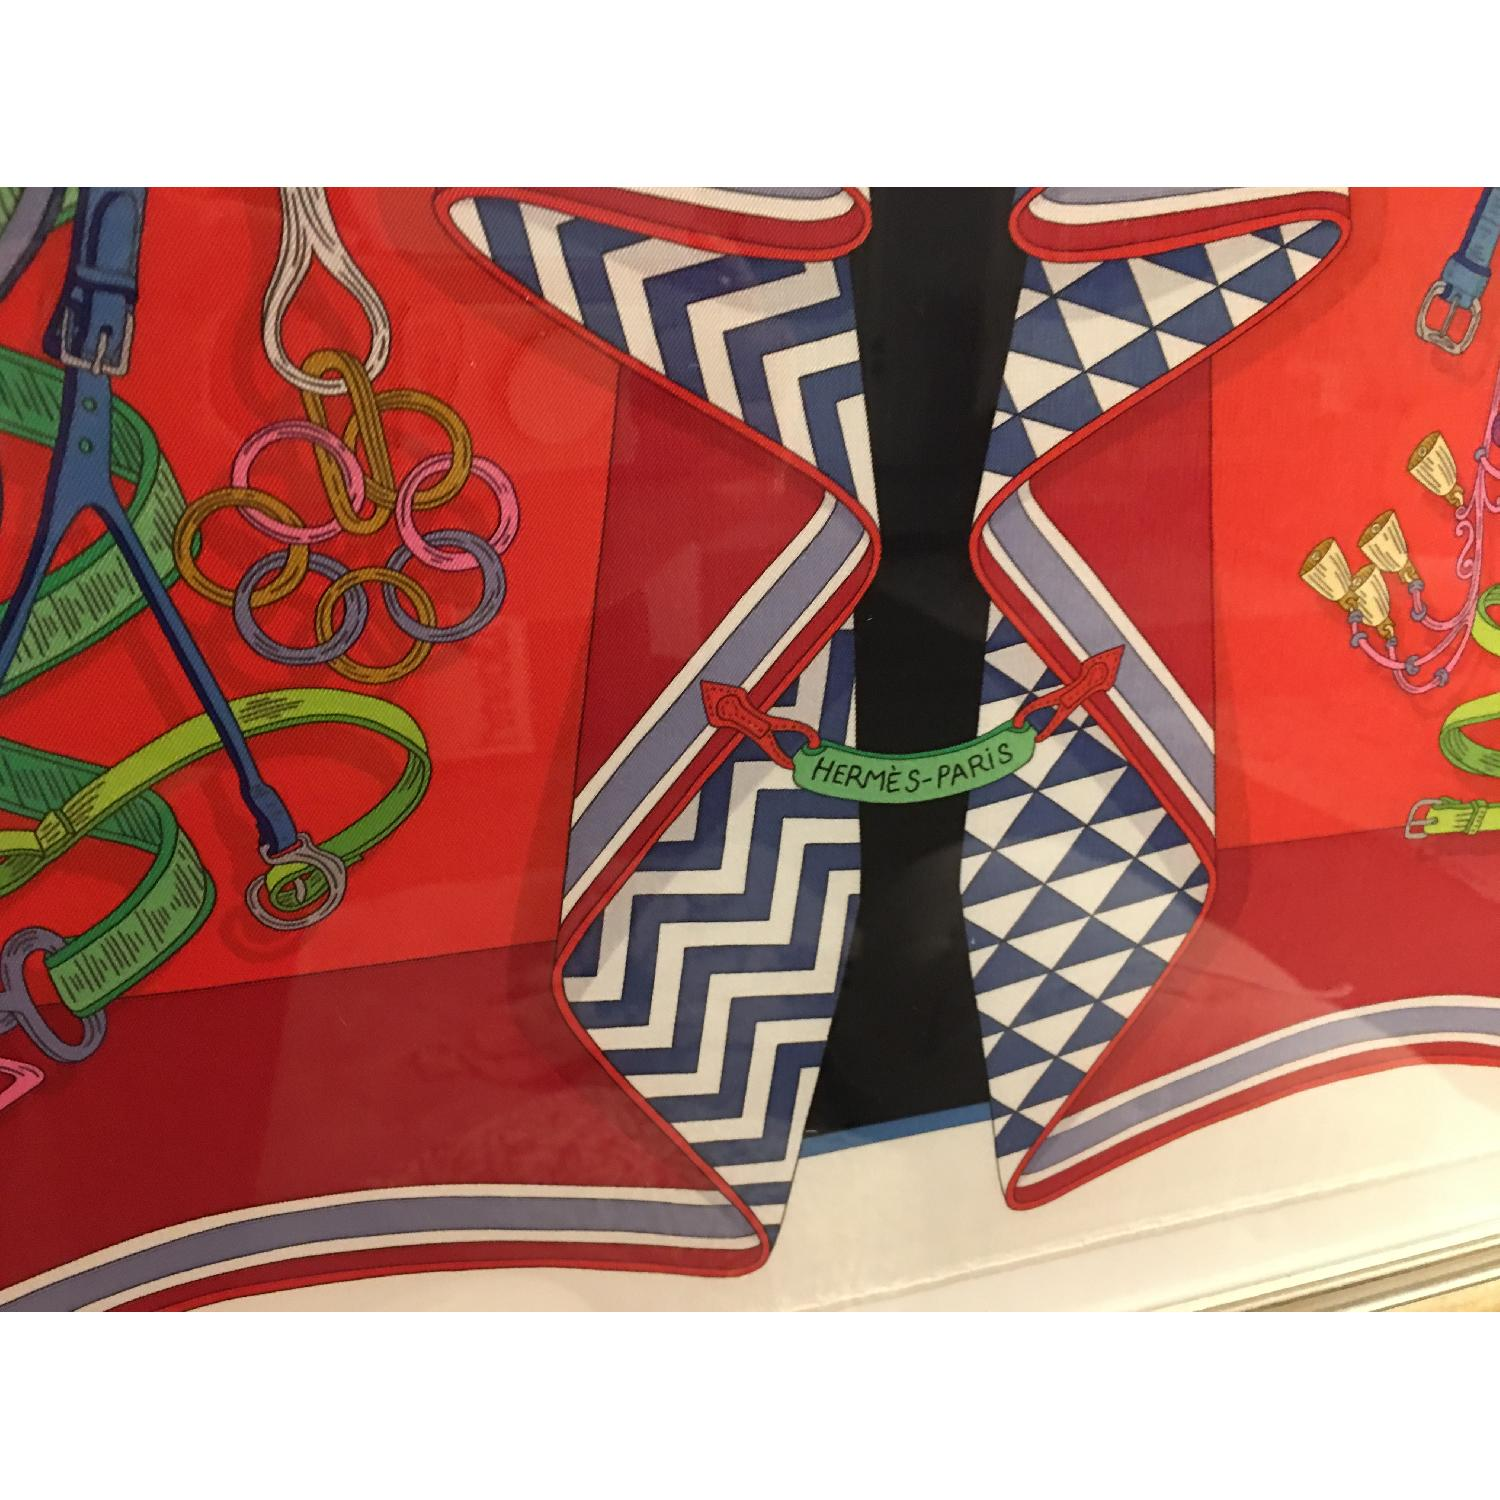 Hermes Framed Scarf Bouquet Sellier in Red - image-3